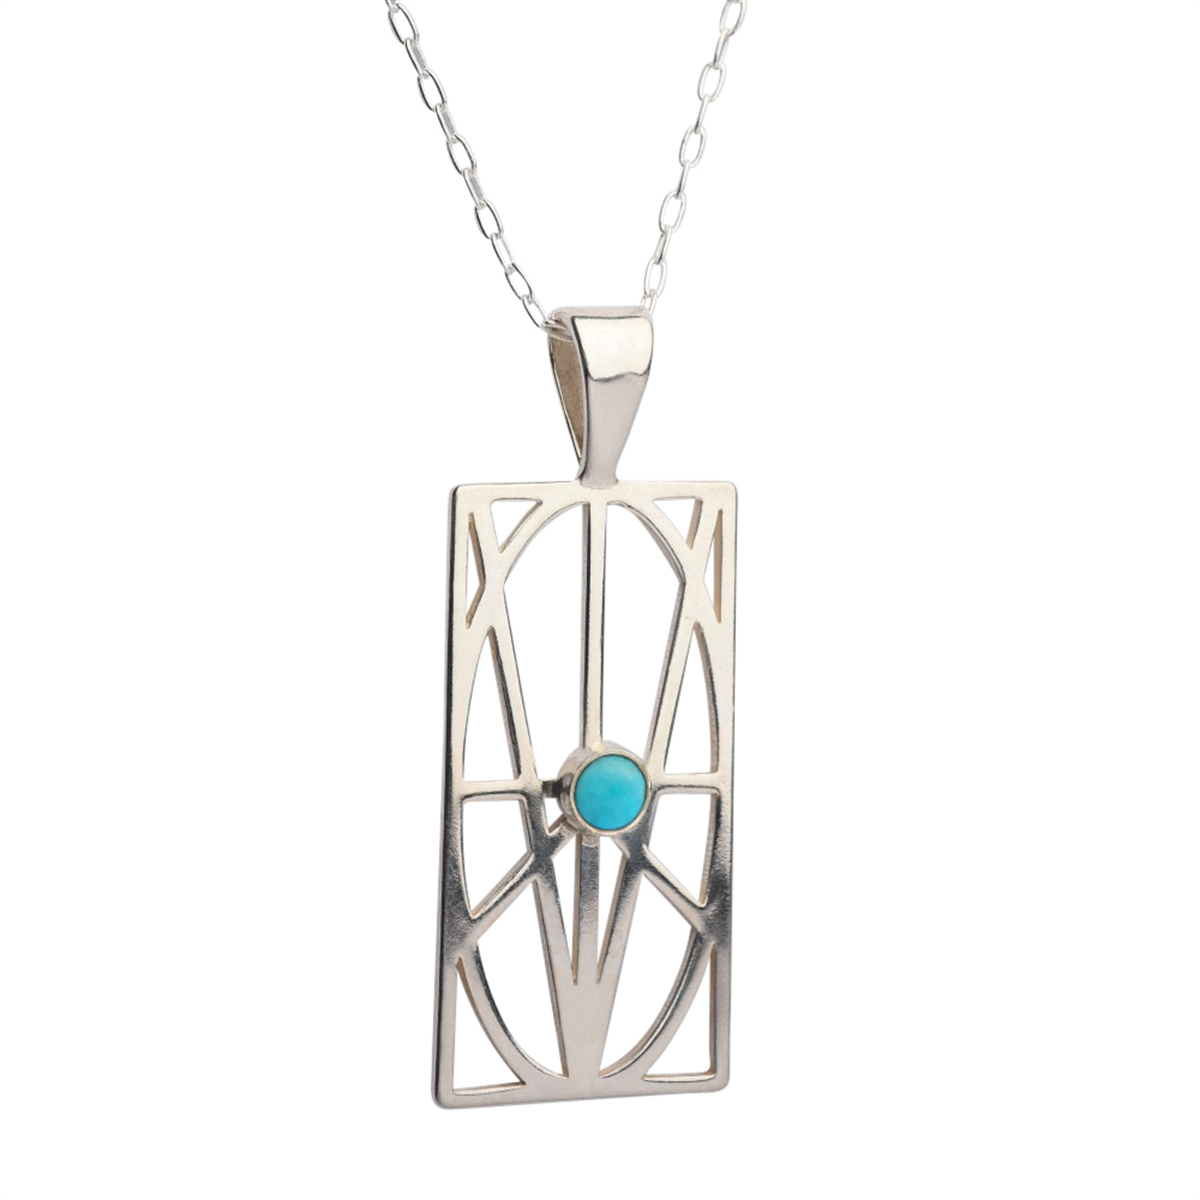 Picture of Women's Large Sterling Silver Pendant with Turquoise